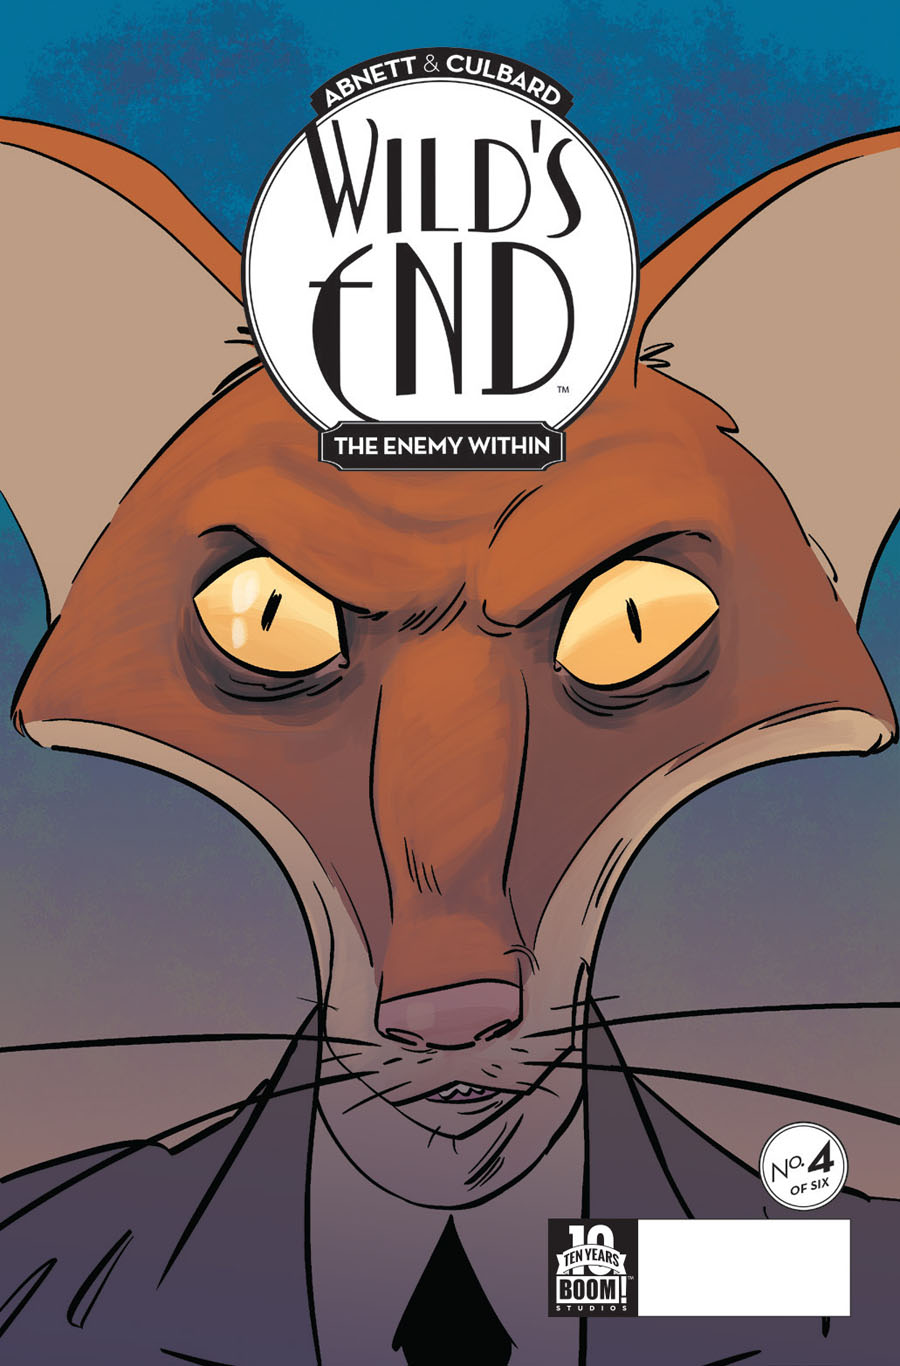 Wilds End Enemy Within #4